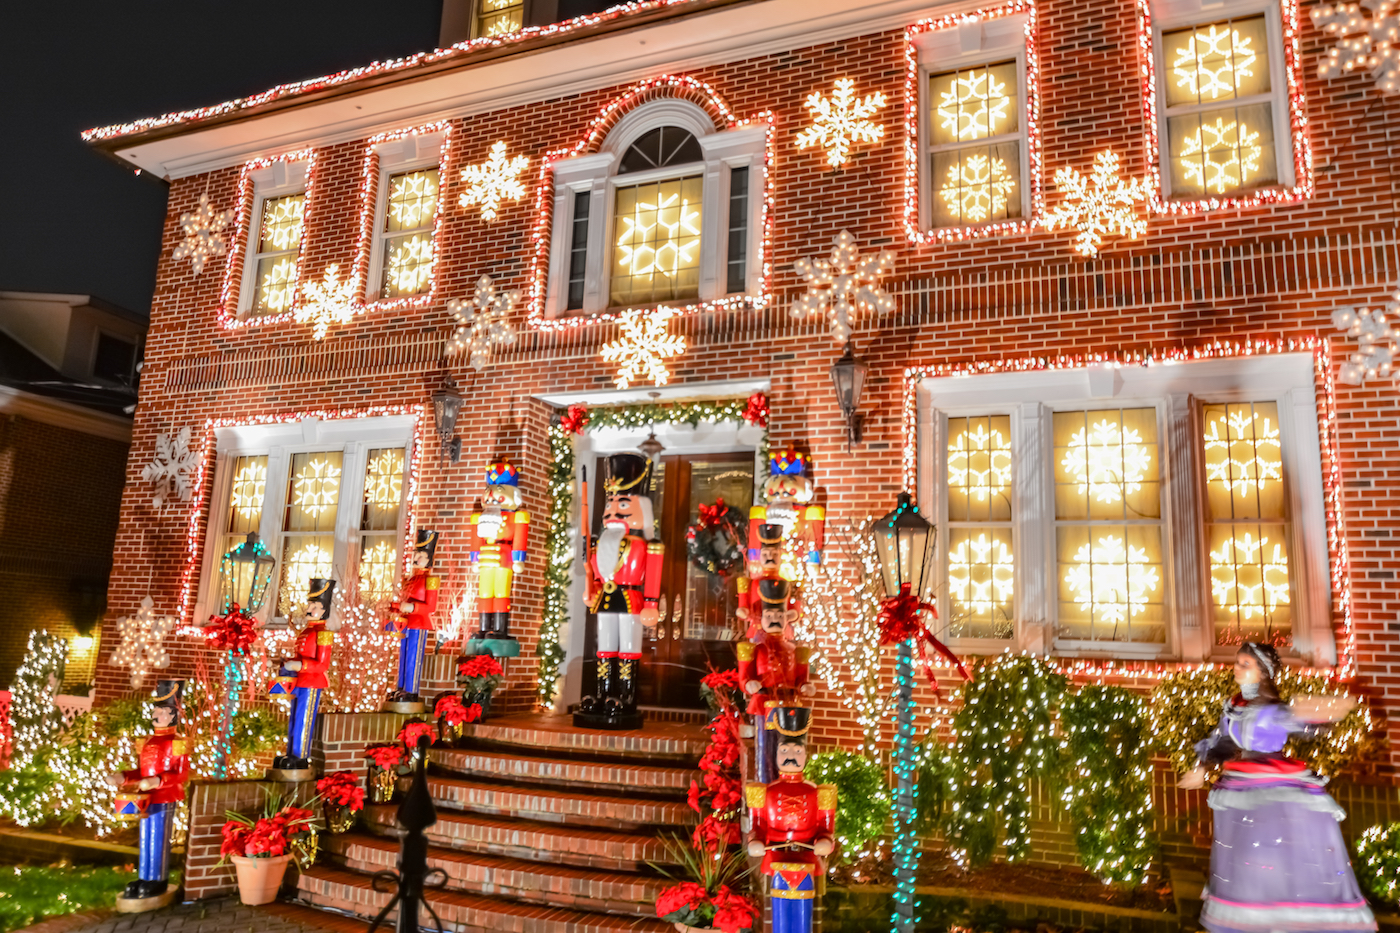 Best Place For Christmas Decorations The 20 Best American Towns To Visit During The Christmas Season